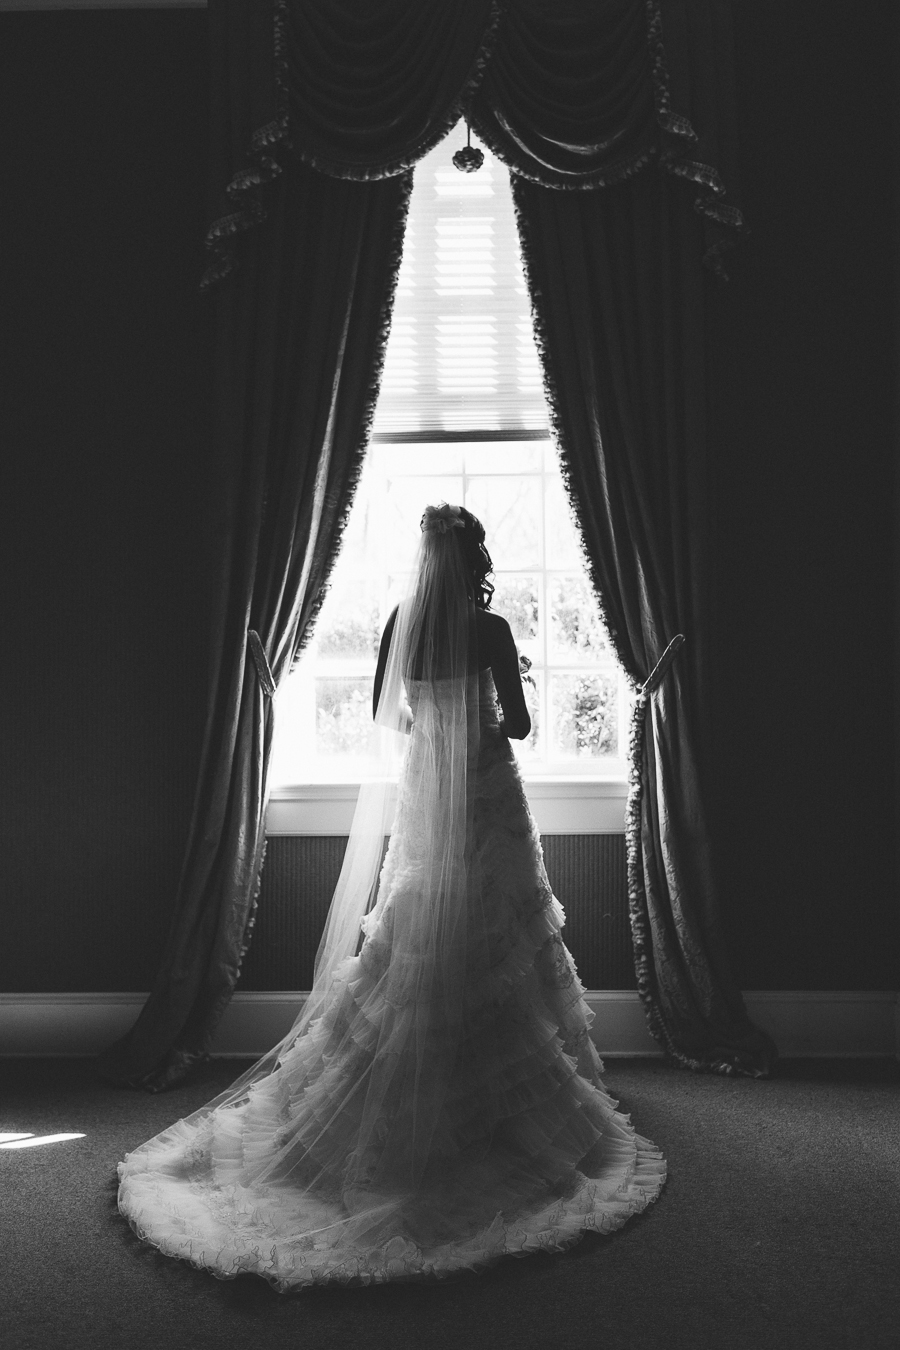 wedding, bride, bridals, black and white, vsco, gorgeous, lady, fort valley, massee lane, garden, georgia, macon, wedding photography